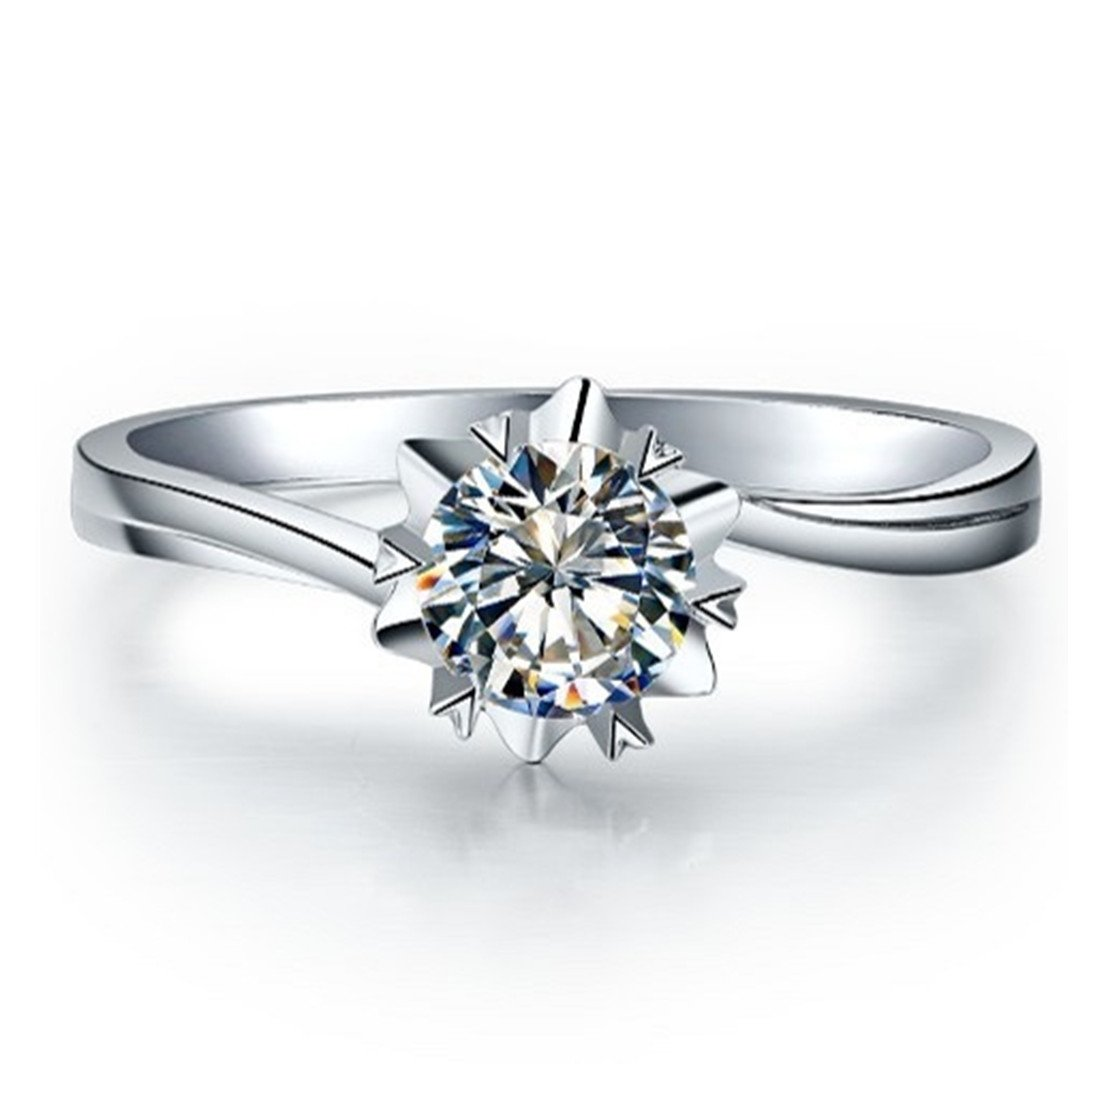 1CT Snowflake Solitaire Engagement Ring NSCD Simulated Diamond Ring for Women 925 Silver